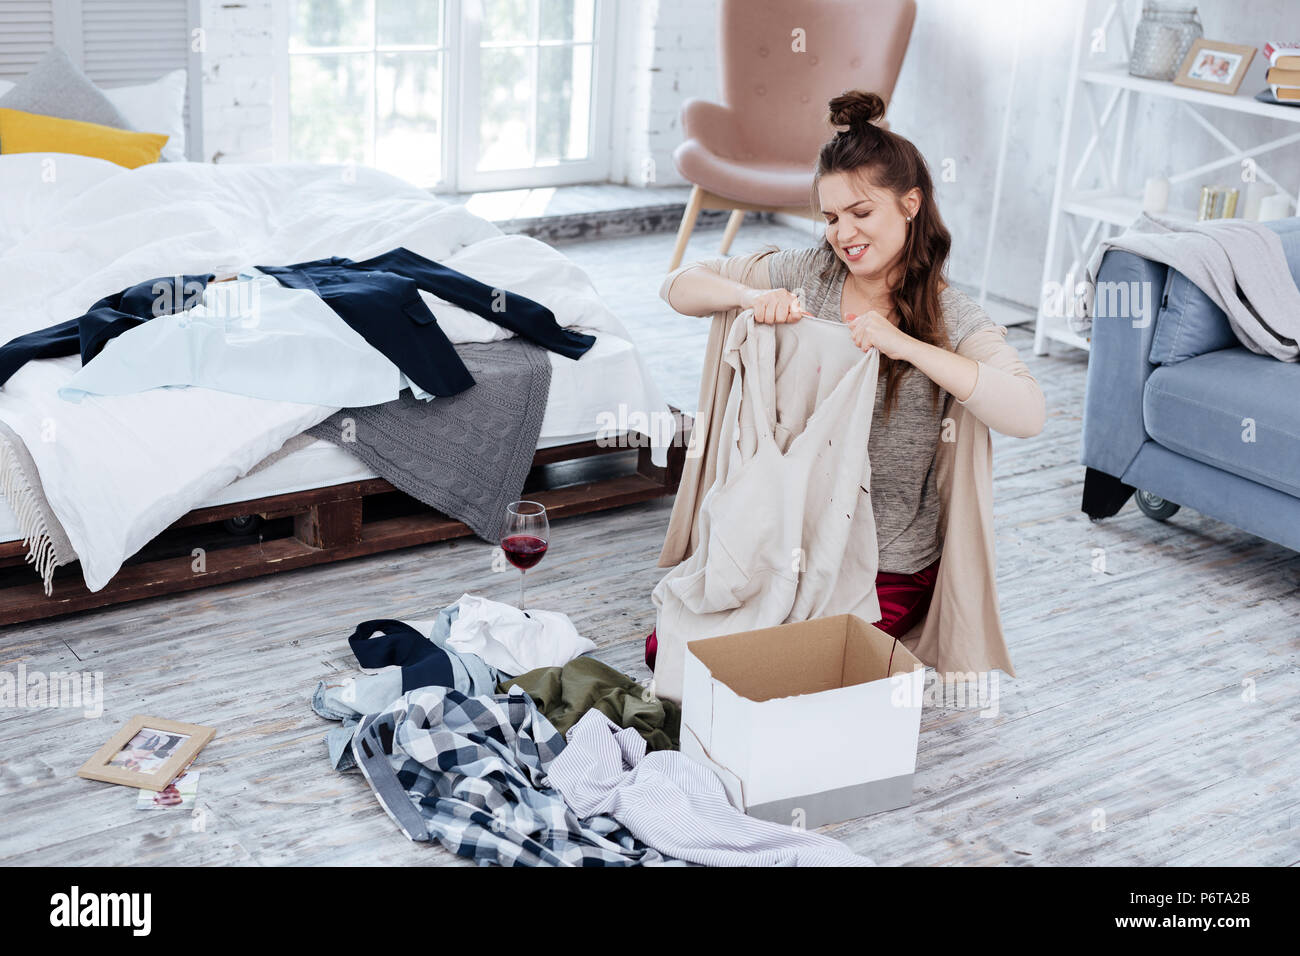 Angry nervous woman tearing clothes of husband after treason - Stock Image